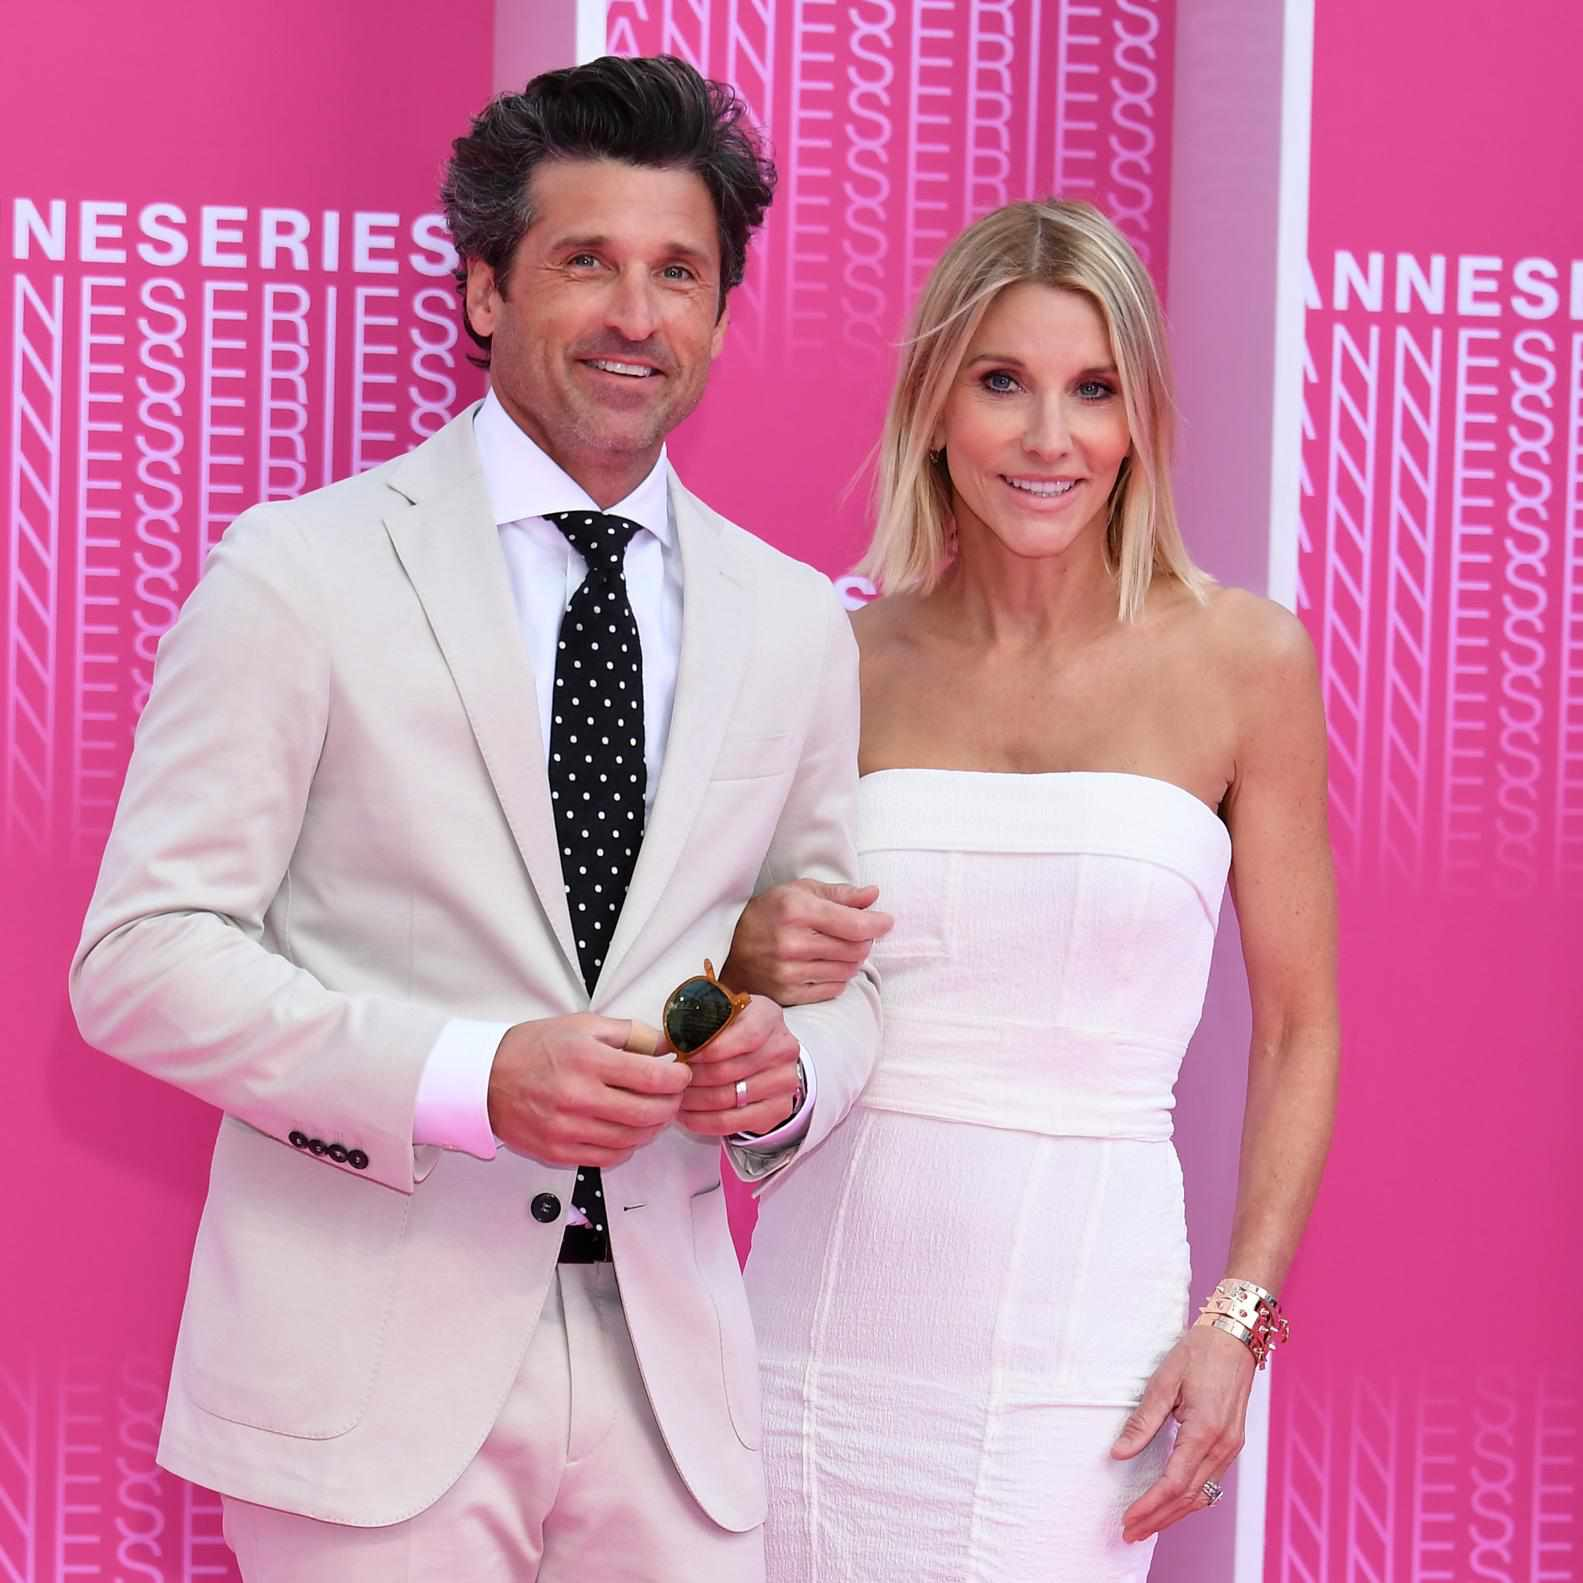 Patrick Dempsey Celebrated His 19th Wedding Anniversary Where He Got